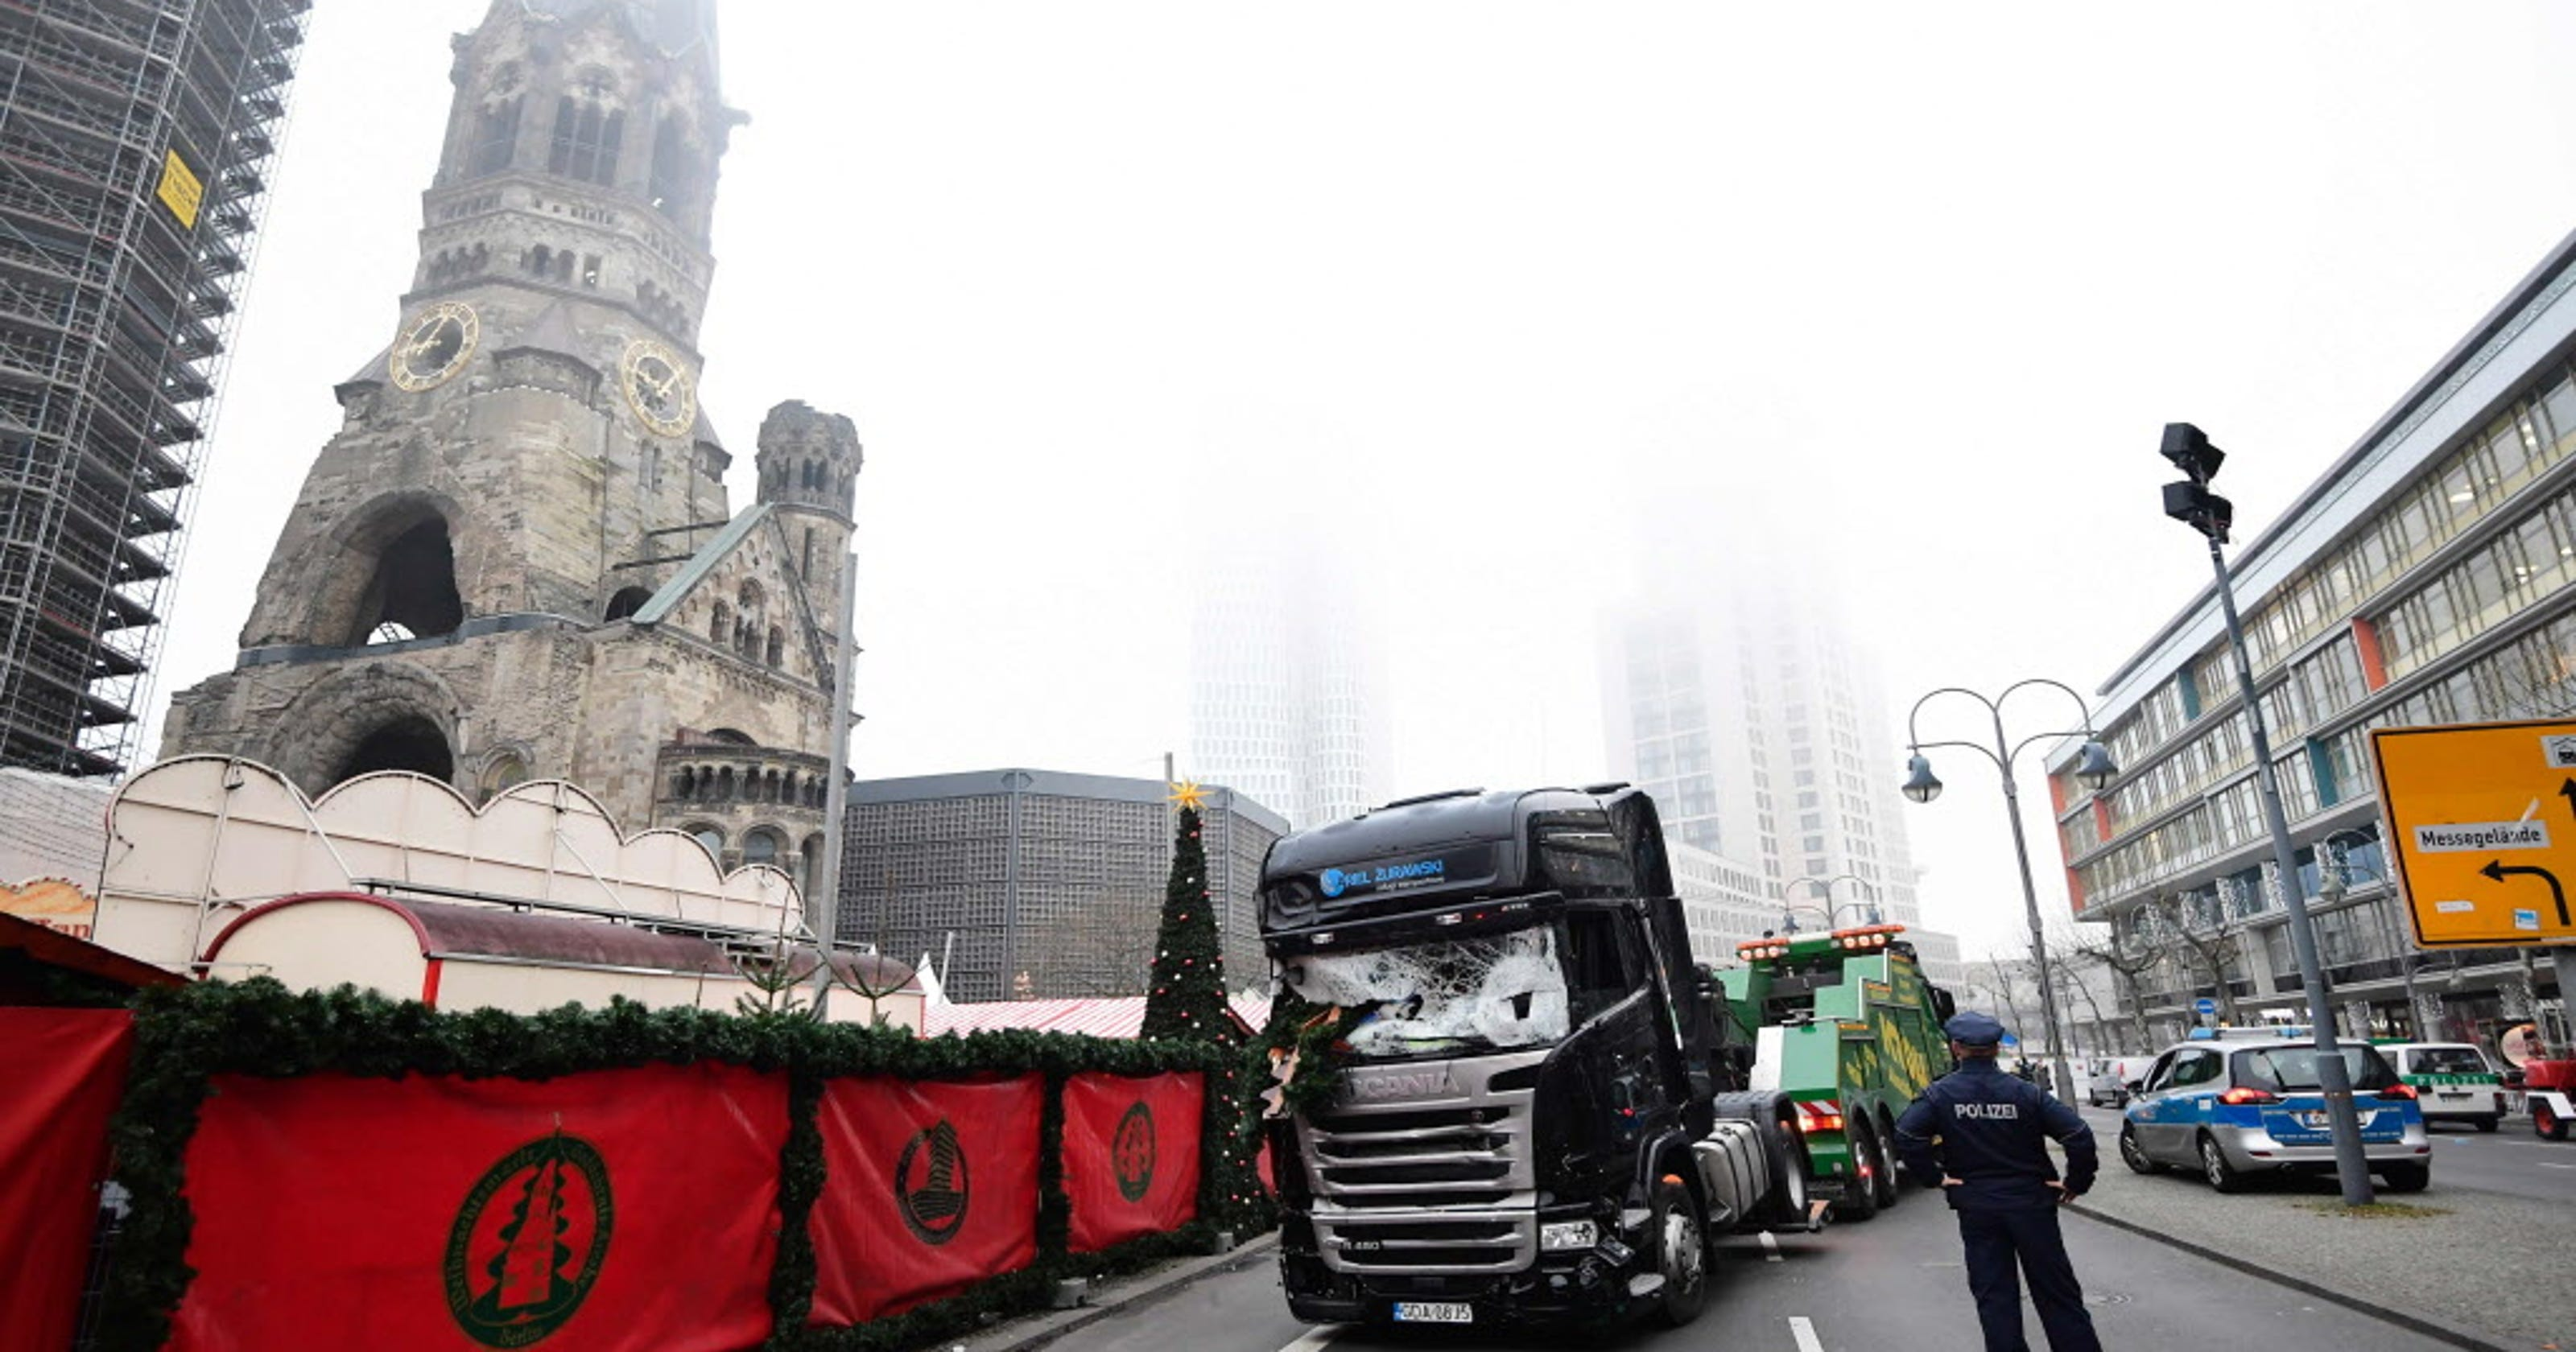 U.S. cities bolster security following Berlin attack